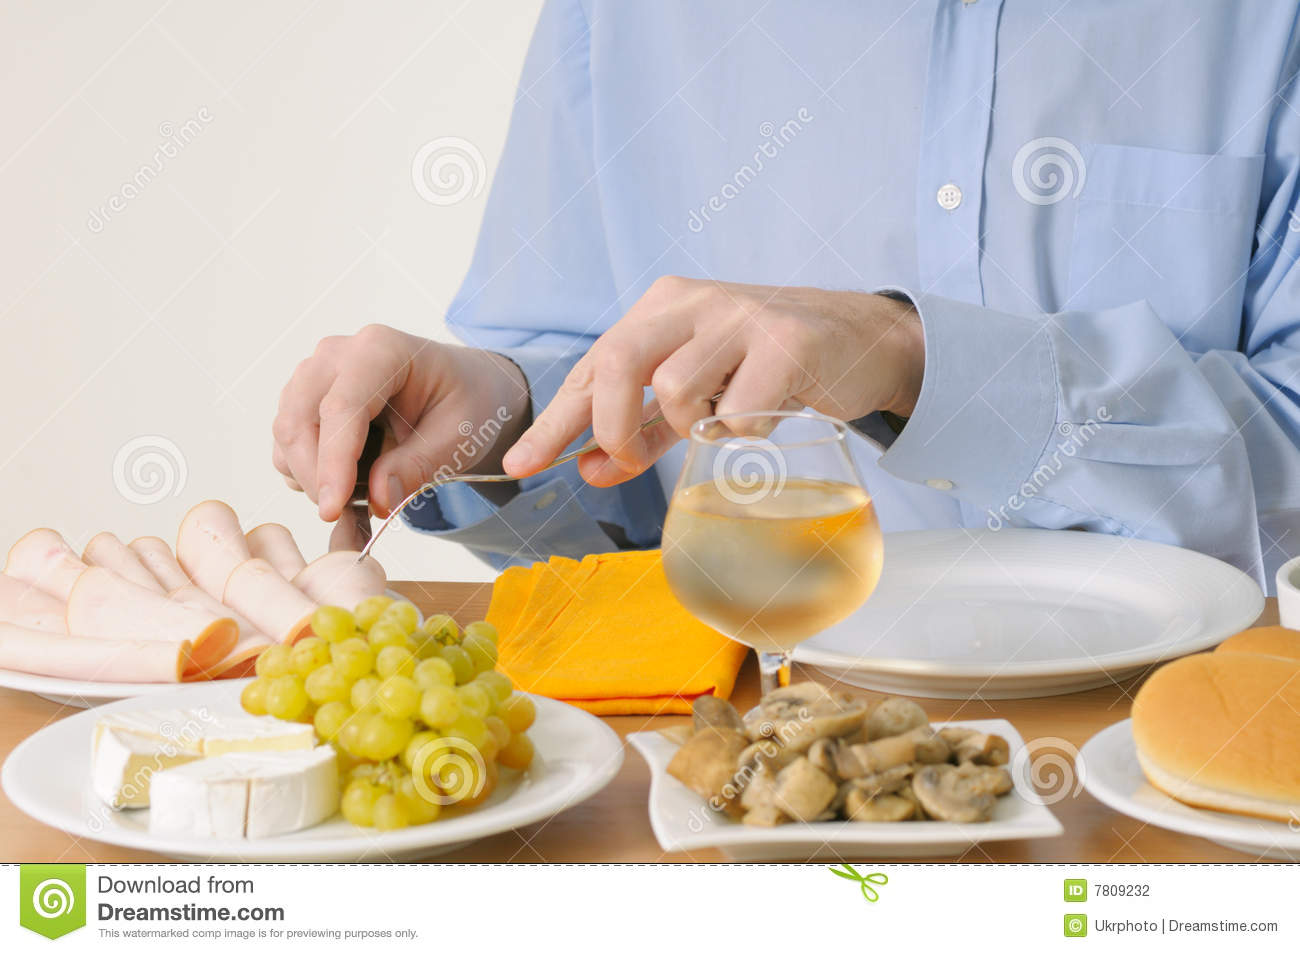 Man Eating Dinner Stock Photography Image 7809232 : man eating dinner 7809232 from dreamstime.com size 1300 x 953 jpeg 104kB